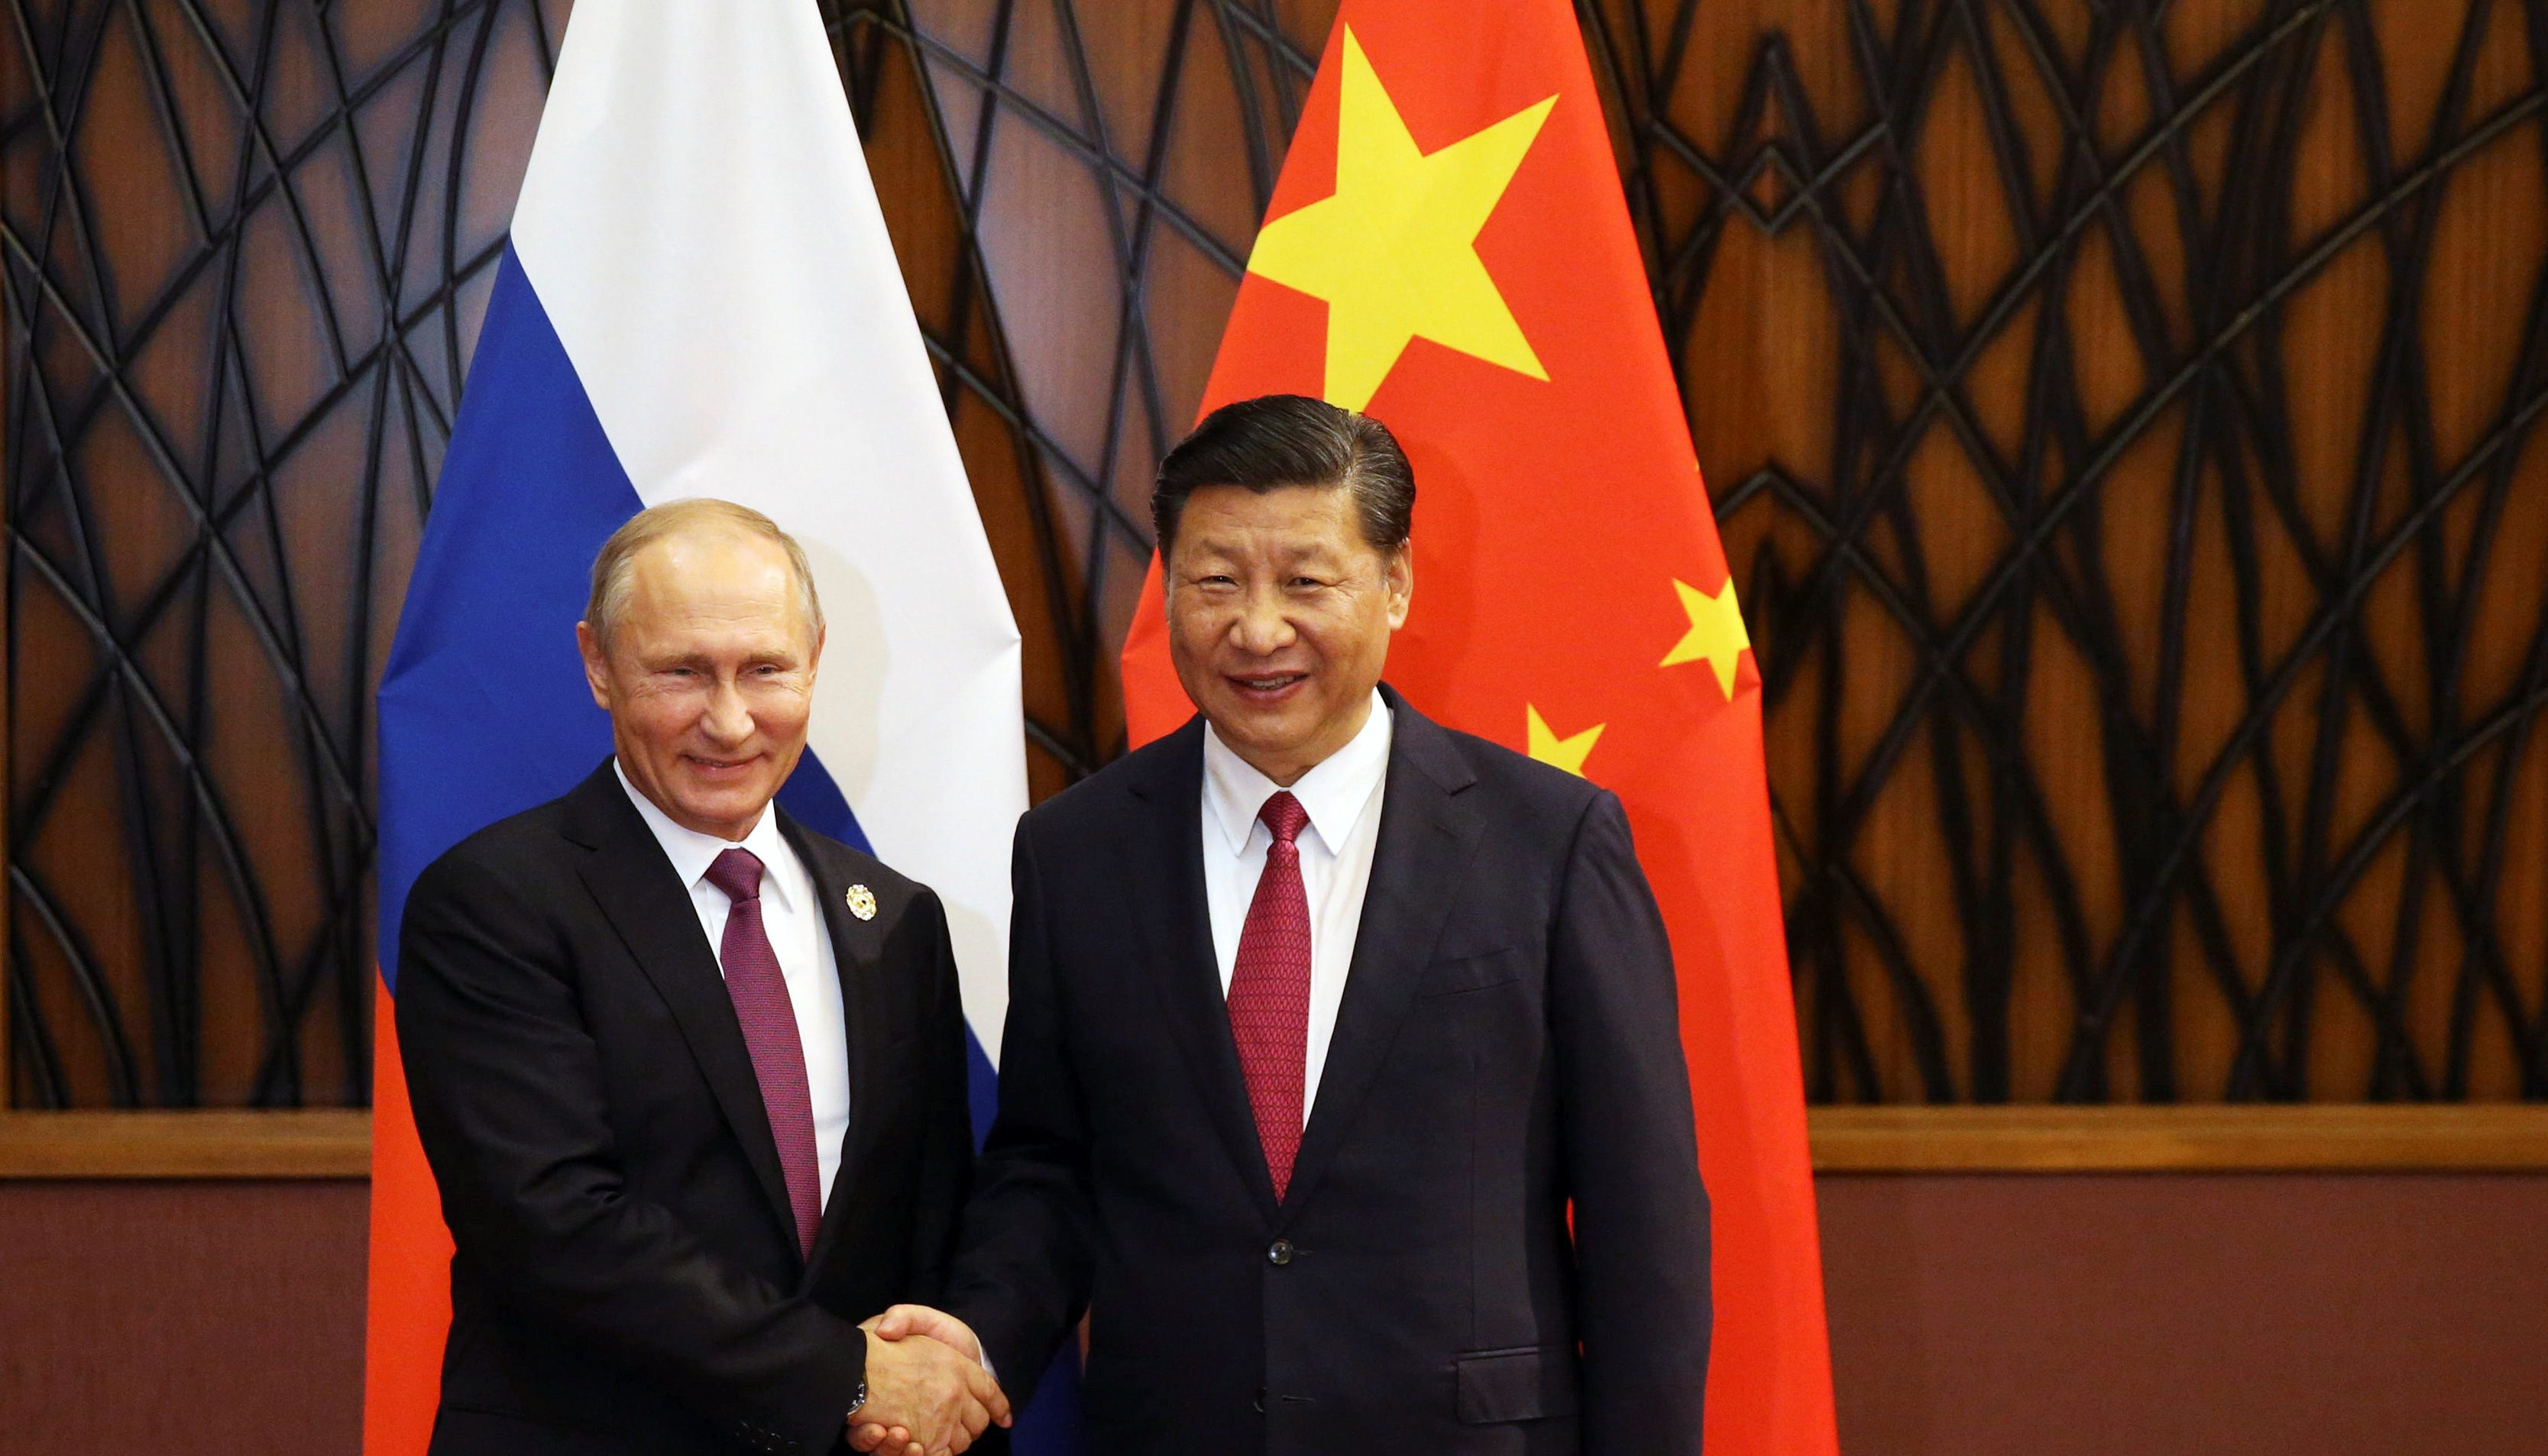 Russian President Vladimir Putin and Chinese President Xi Jinping shake hands during a meeting on the sidelines of the APEC summit in Danang, Vietnam November 10, 2017. Sputnik/Konstantin Zavrazhin/Kremlin via REUTERS ATTENTION EDITORS - THIS IMAGE WAS PROVIDED BY A THIRD PARTY. - RC1BB457E1C0